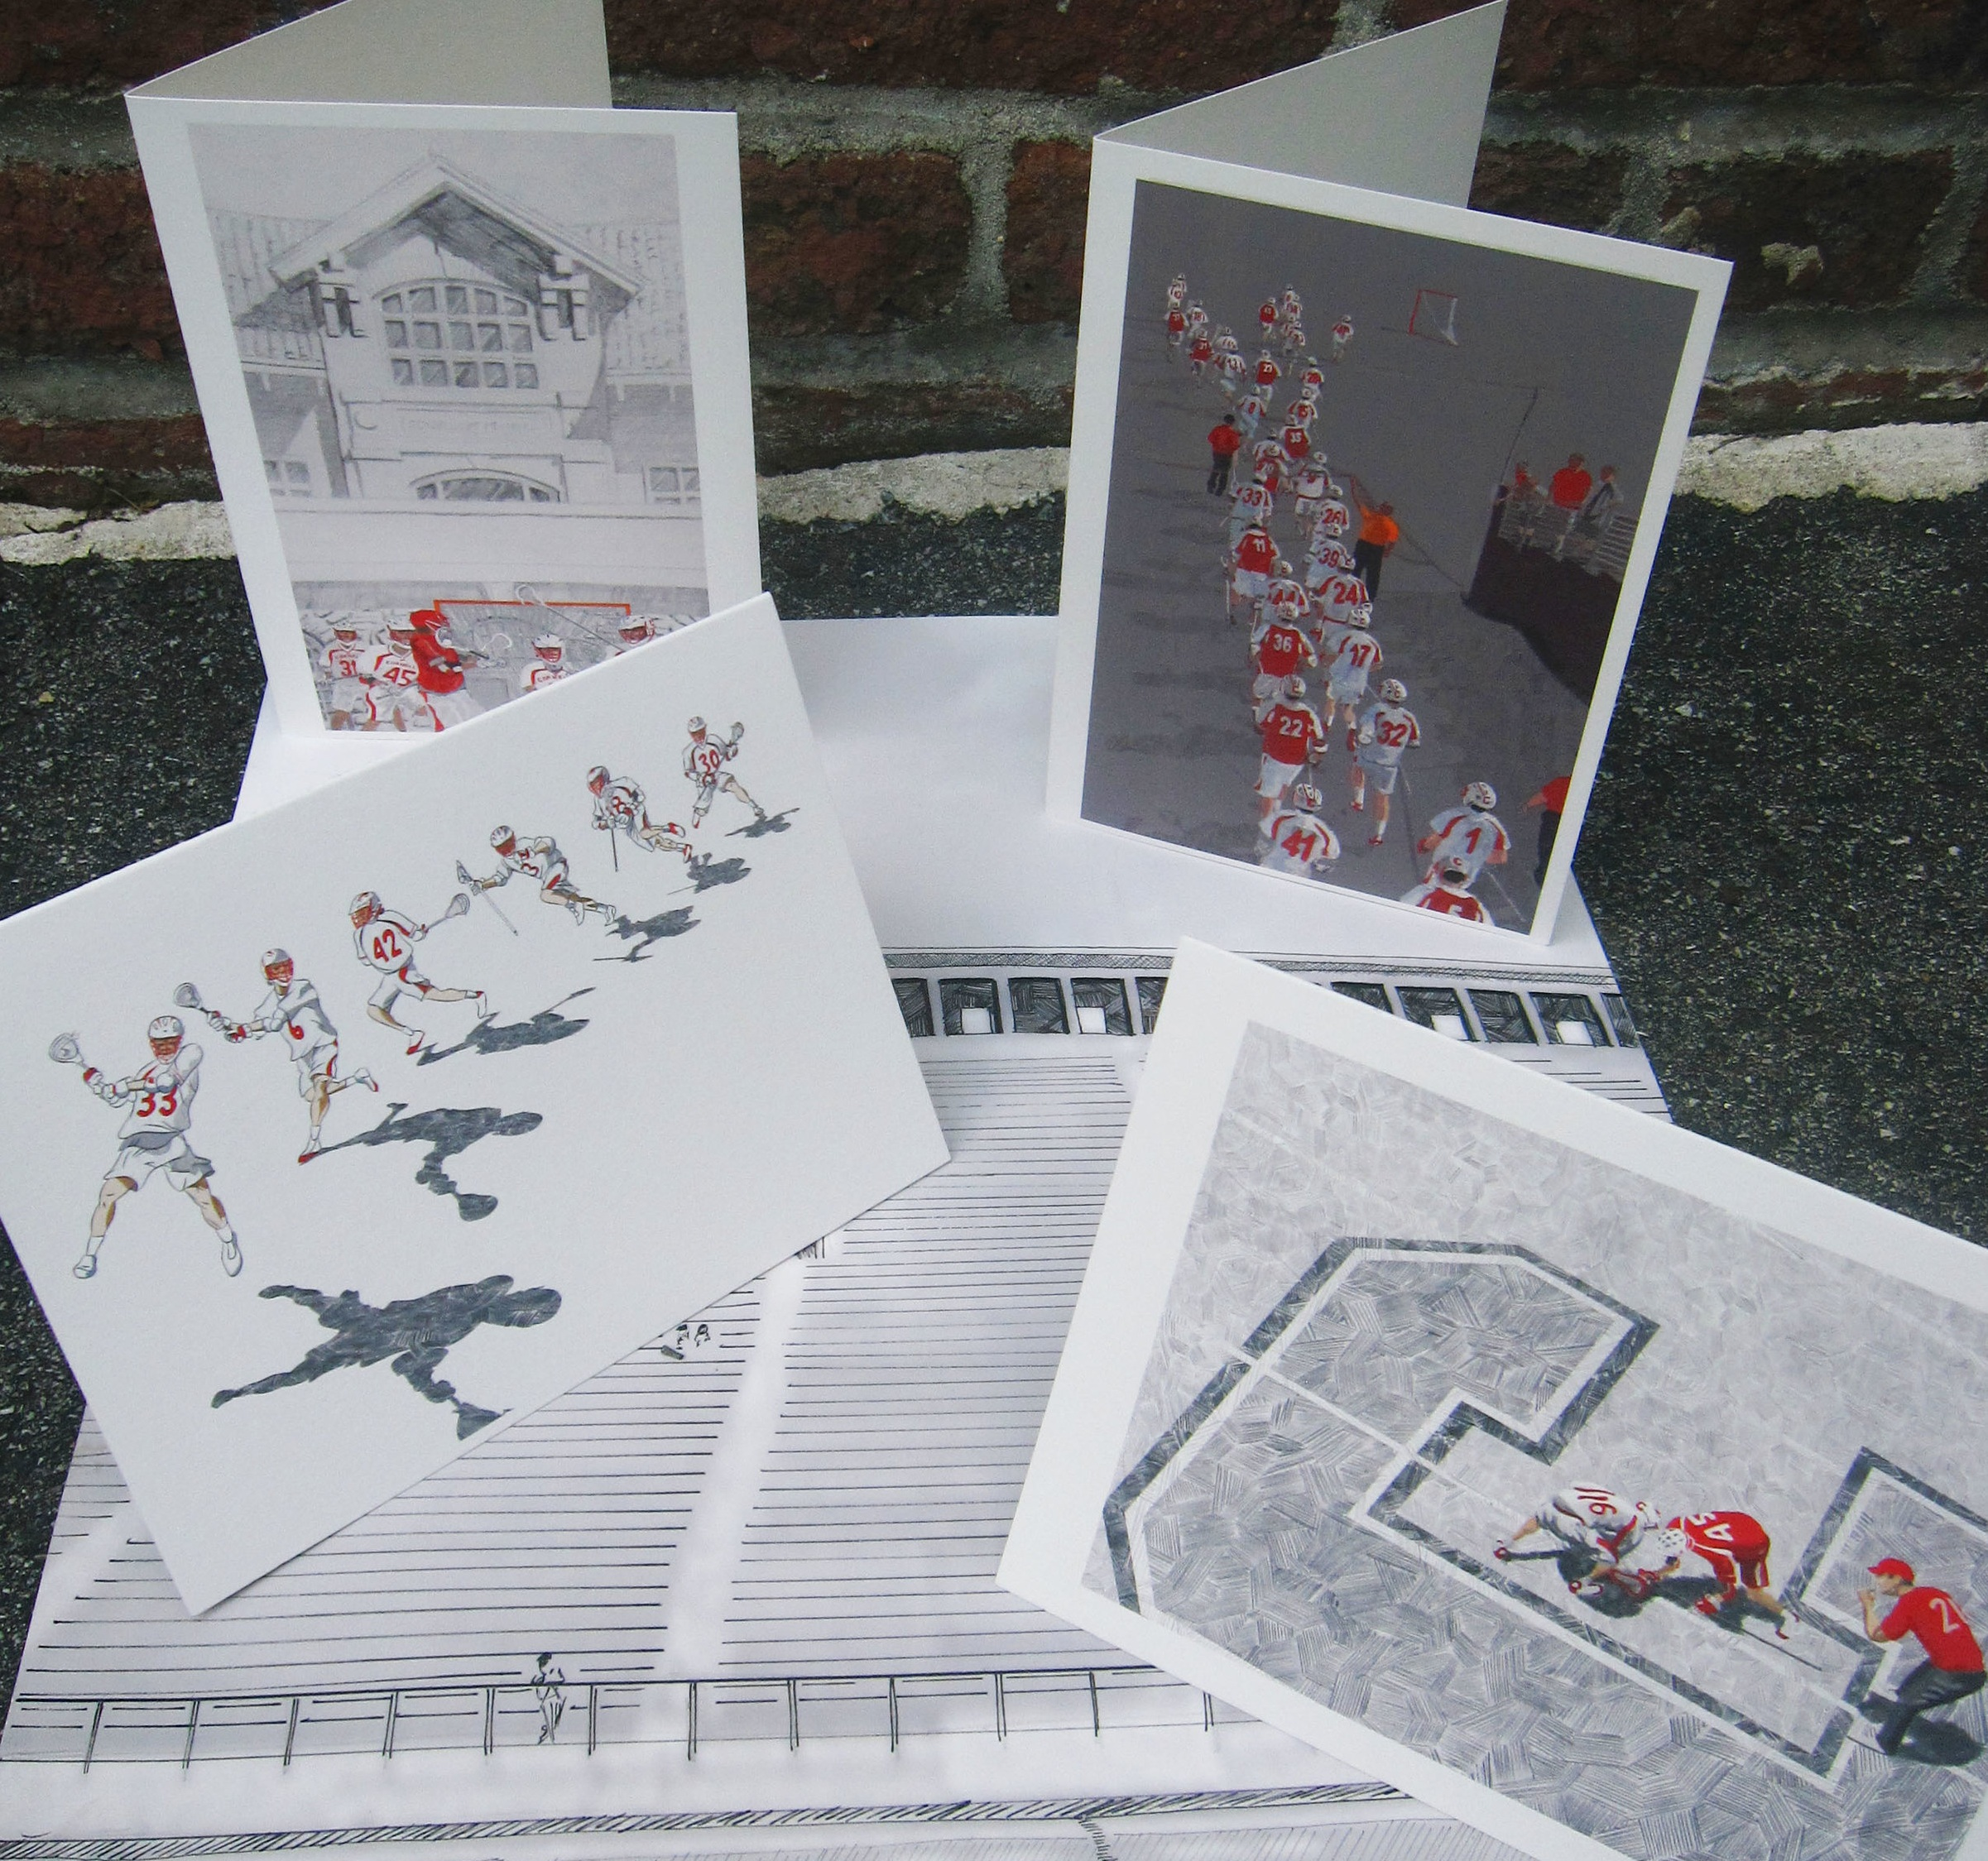 - Along with the above image came a series of prints (mixed media, ink and digital) and note cards depicting the current team.Audience: Parents, alumni, fans